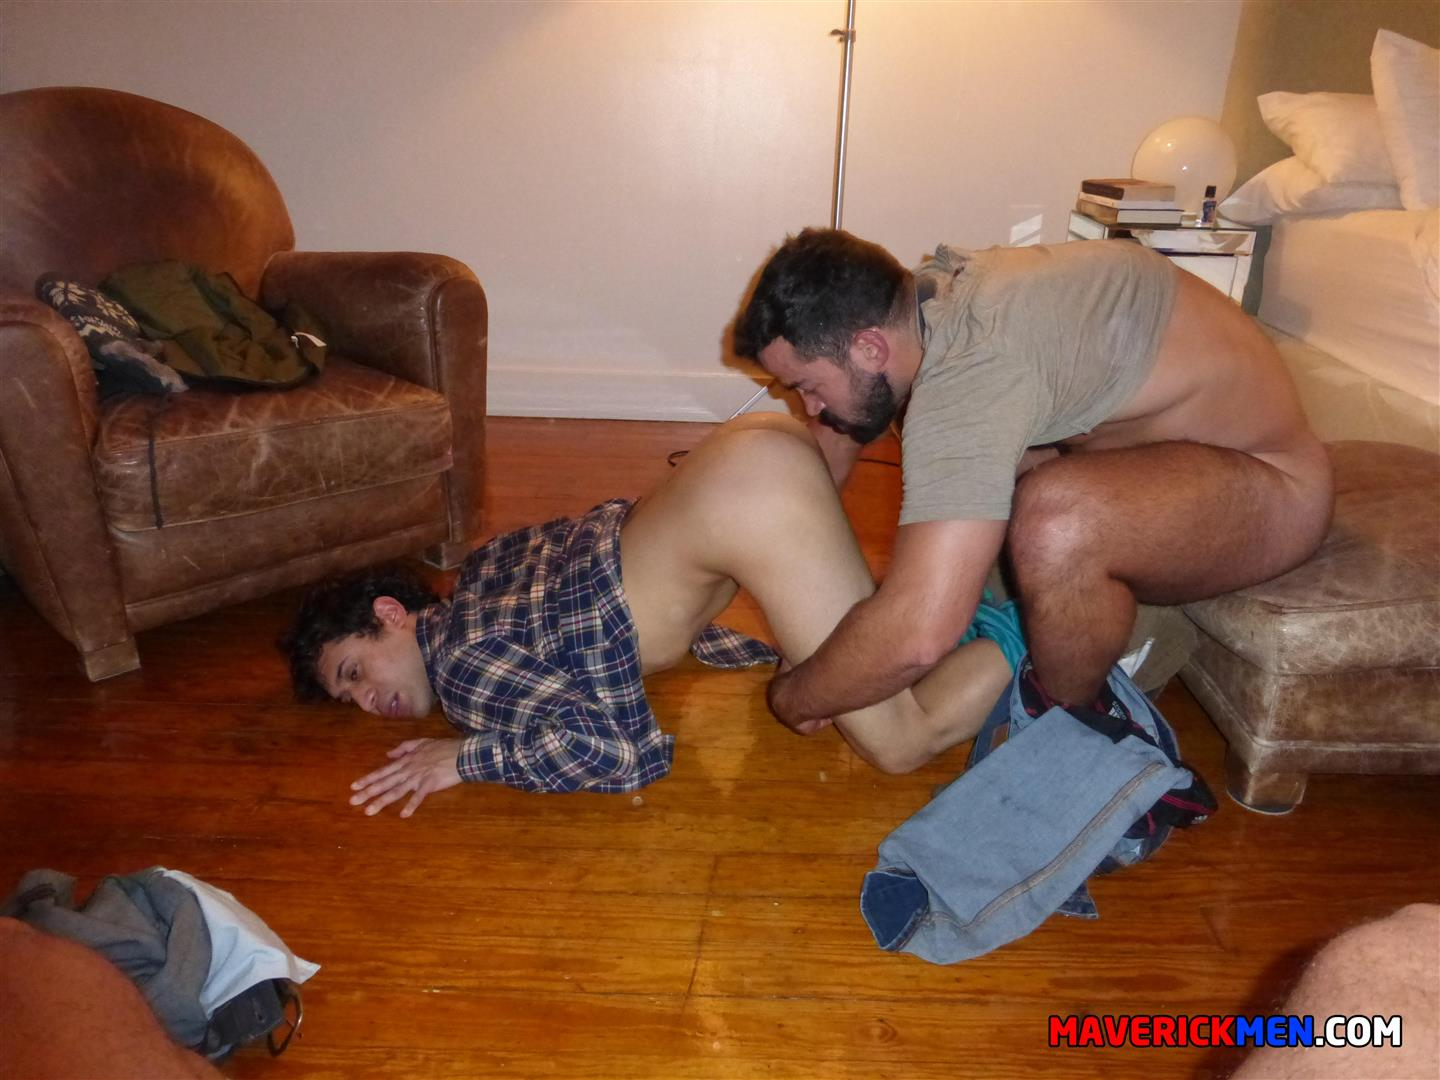 Macerick-Men-Cole-and-Hunter-and-Jason-Barebacking-Interracial-Hairy-Muscle-Daddy-Amateur-Gay-Porn-07 Maverick Men: Muscle Dads Spit-Roasting A Twink Bareback